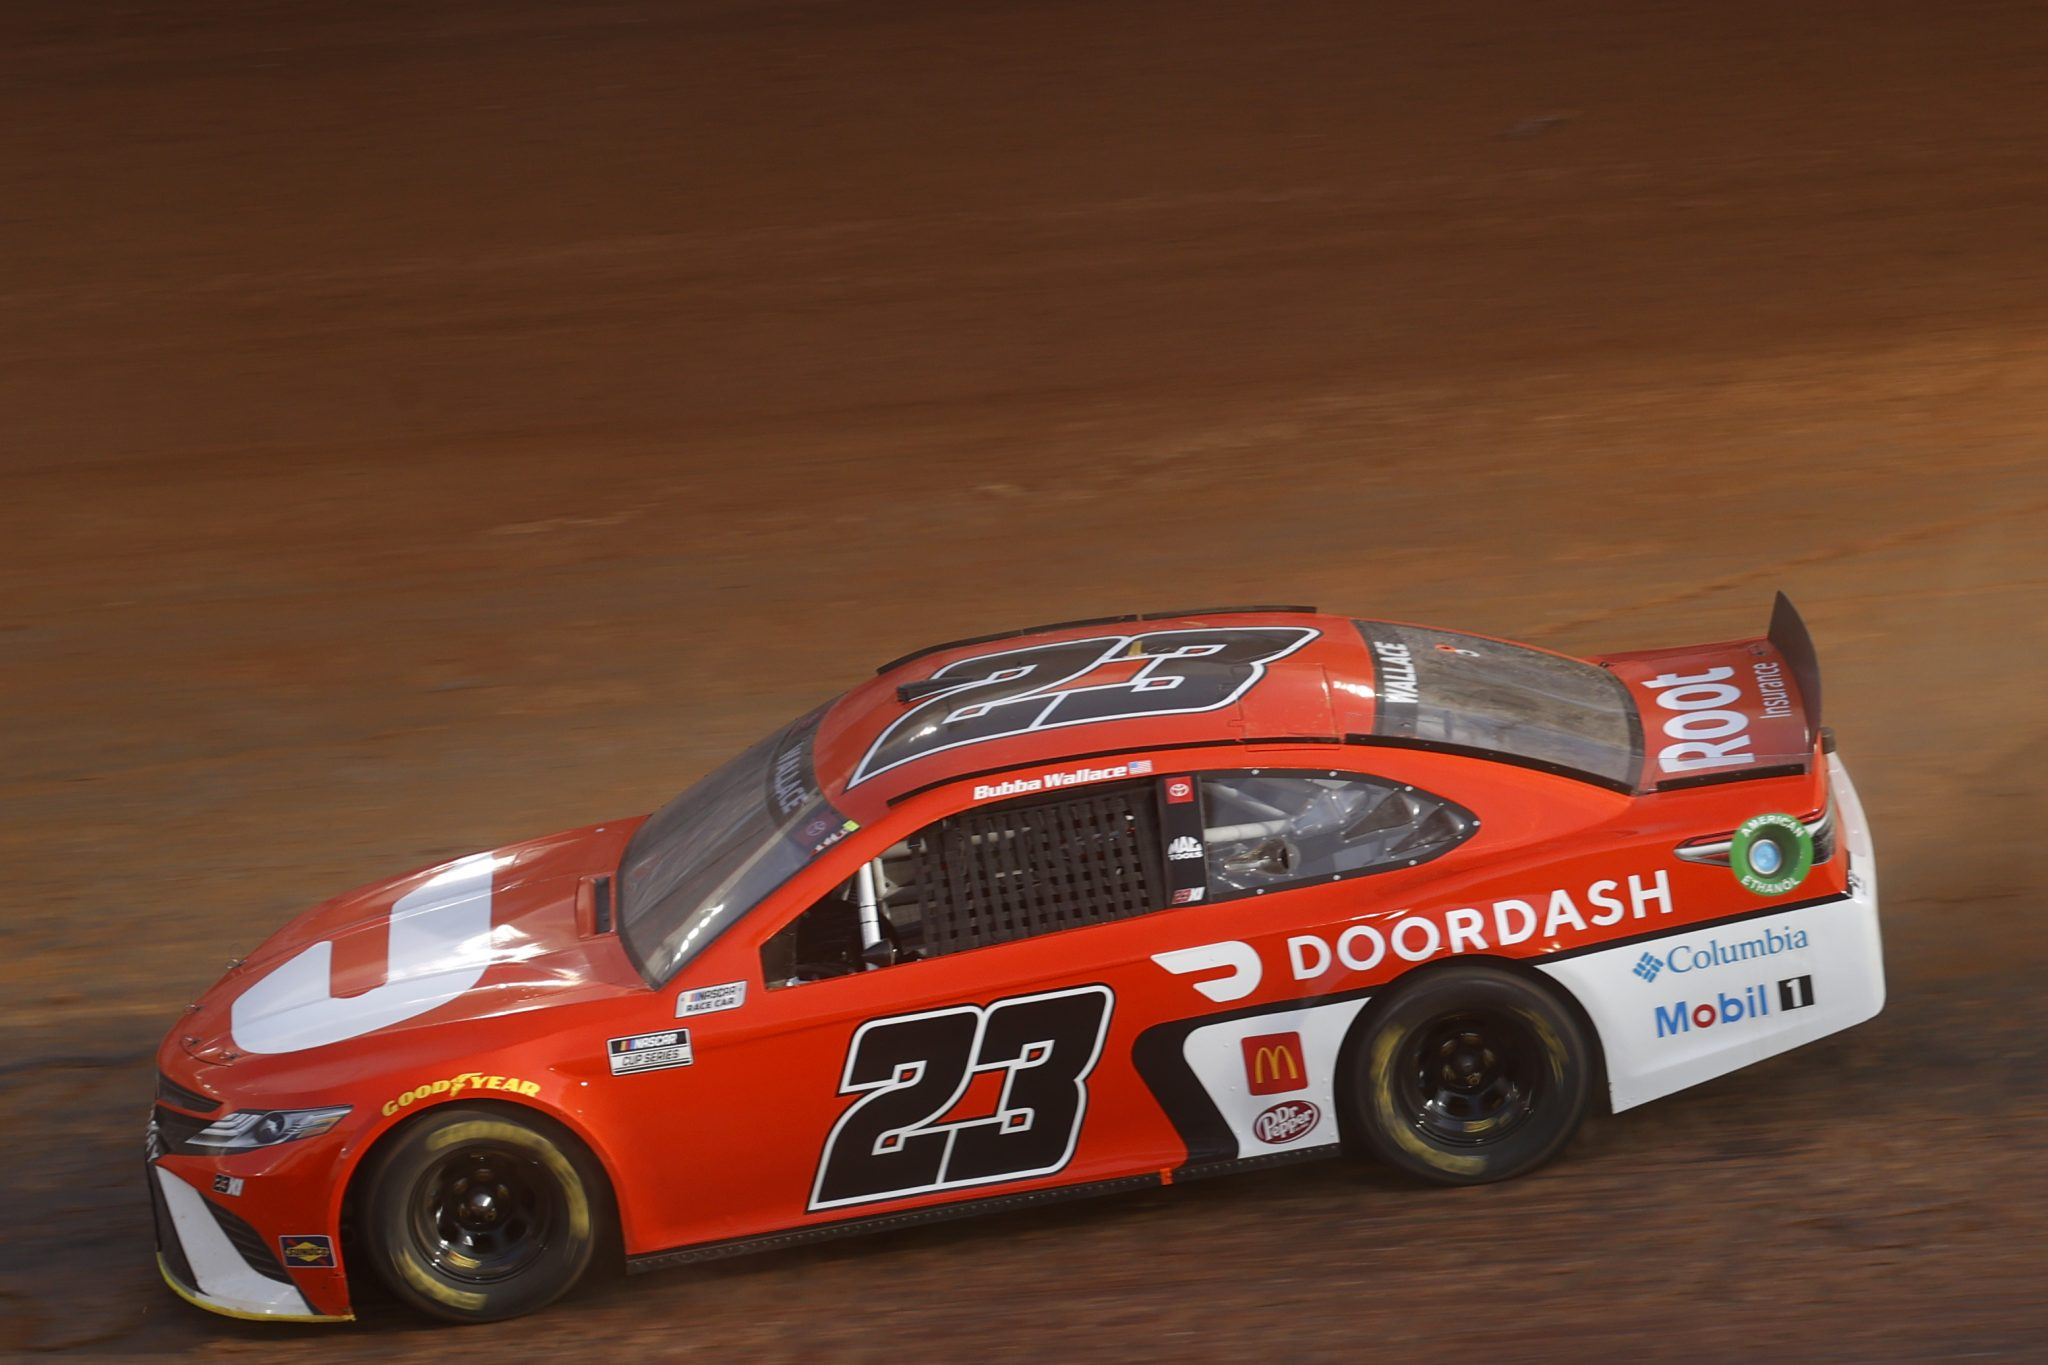 BRISTOL, TENNESSEE - MARCH 26: Bubba Wallace, driver of the #23 DoorDash Toyota, drives during practice for the NASCAR Cup Series Food City Dirt Race at Bristol Motor Speedway on March 26, 2021 in Bristol, Tennessee. (Photo by Chris Graythen/Getty Images) | Getty Images